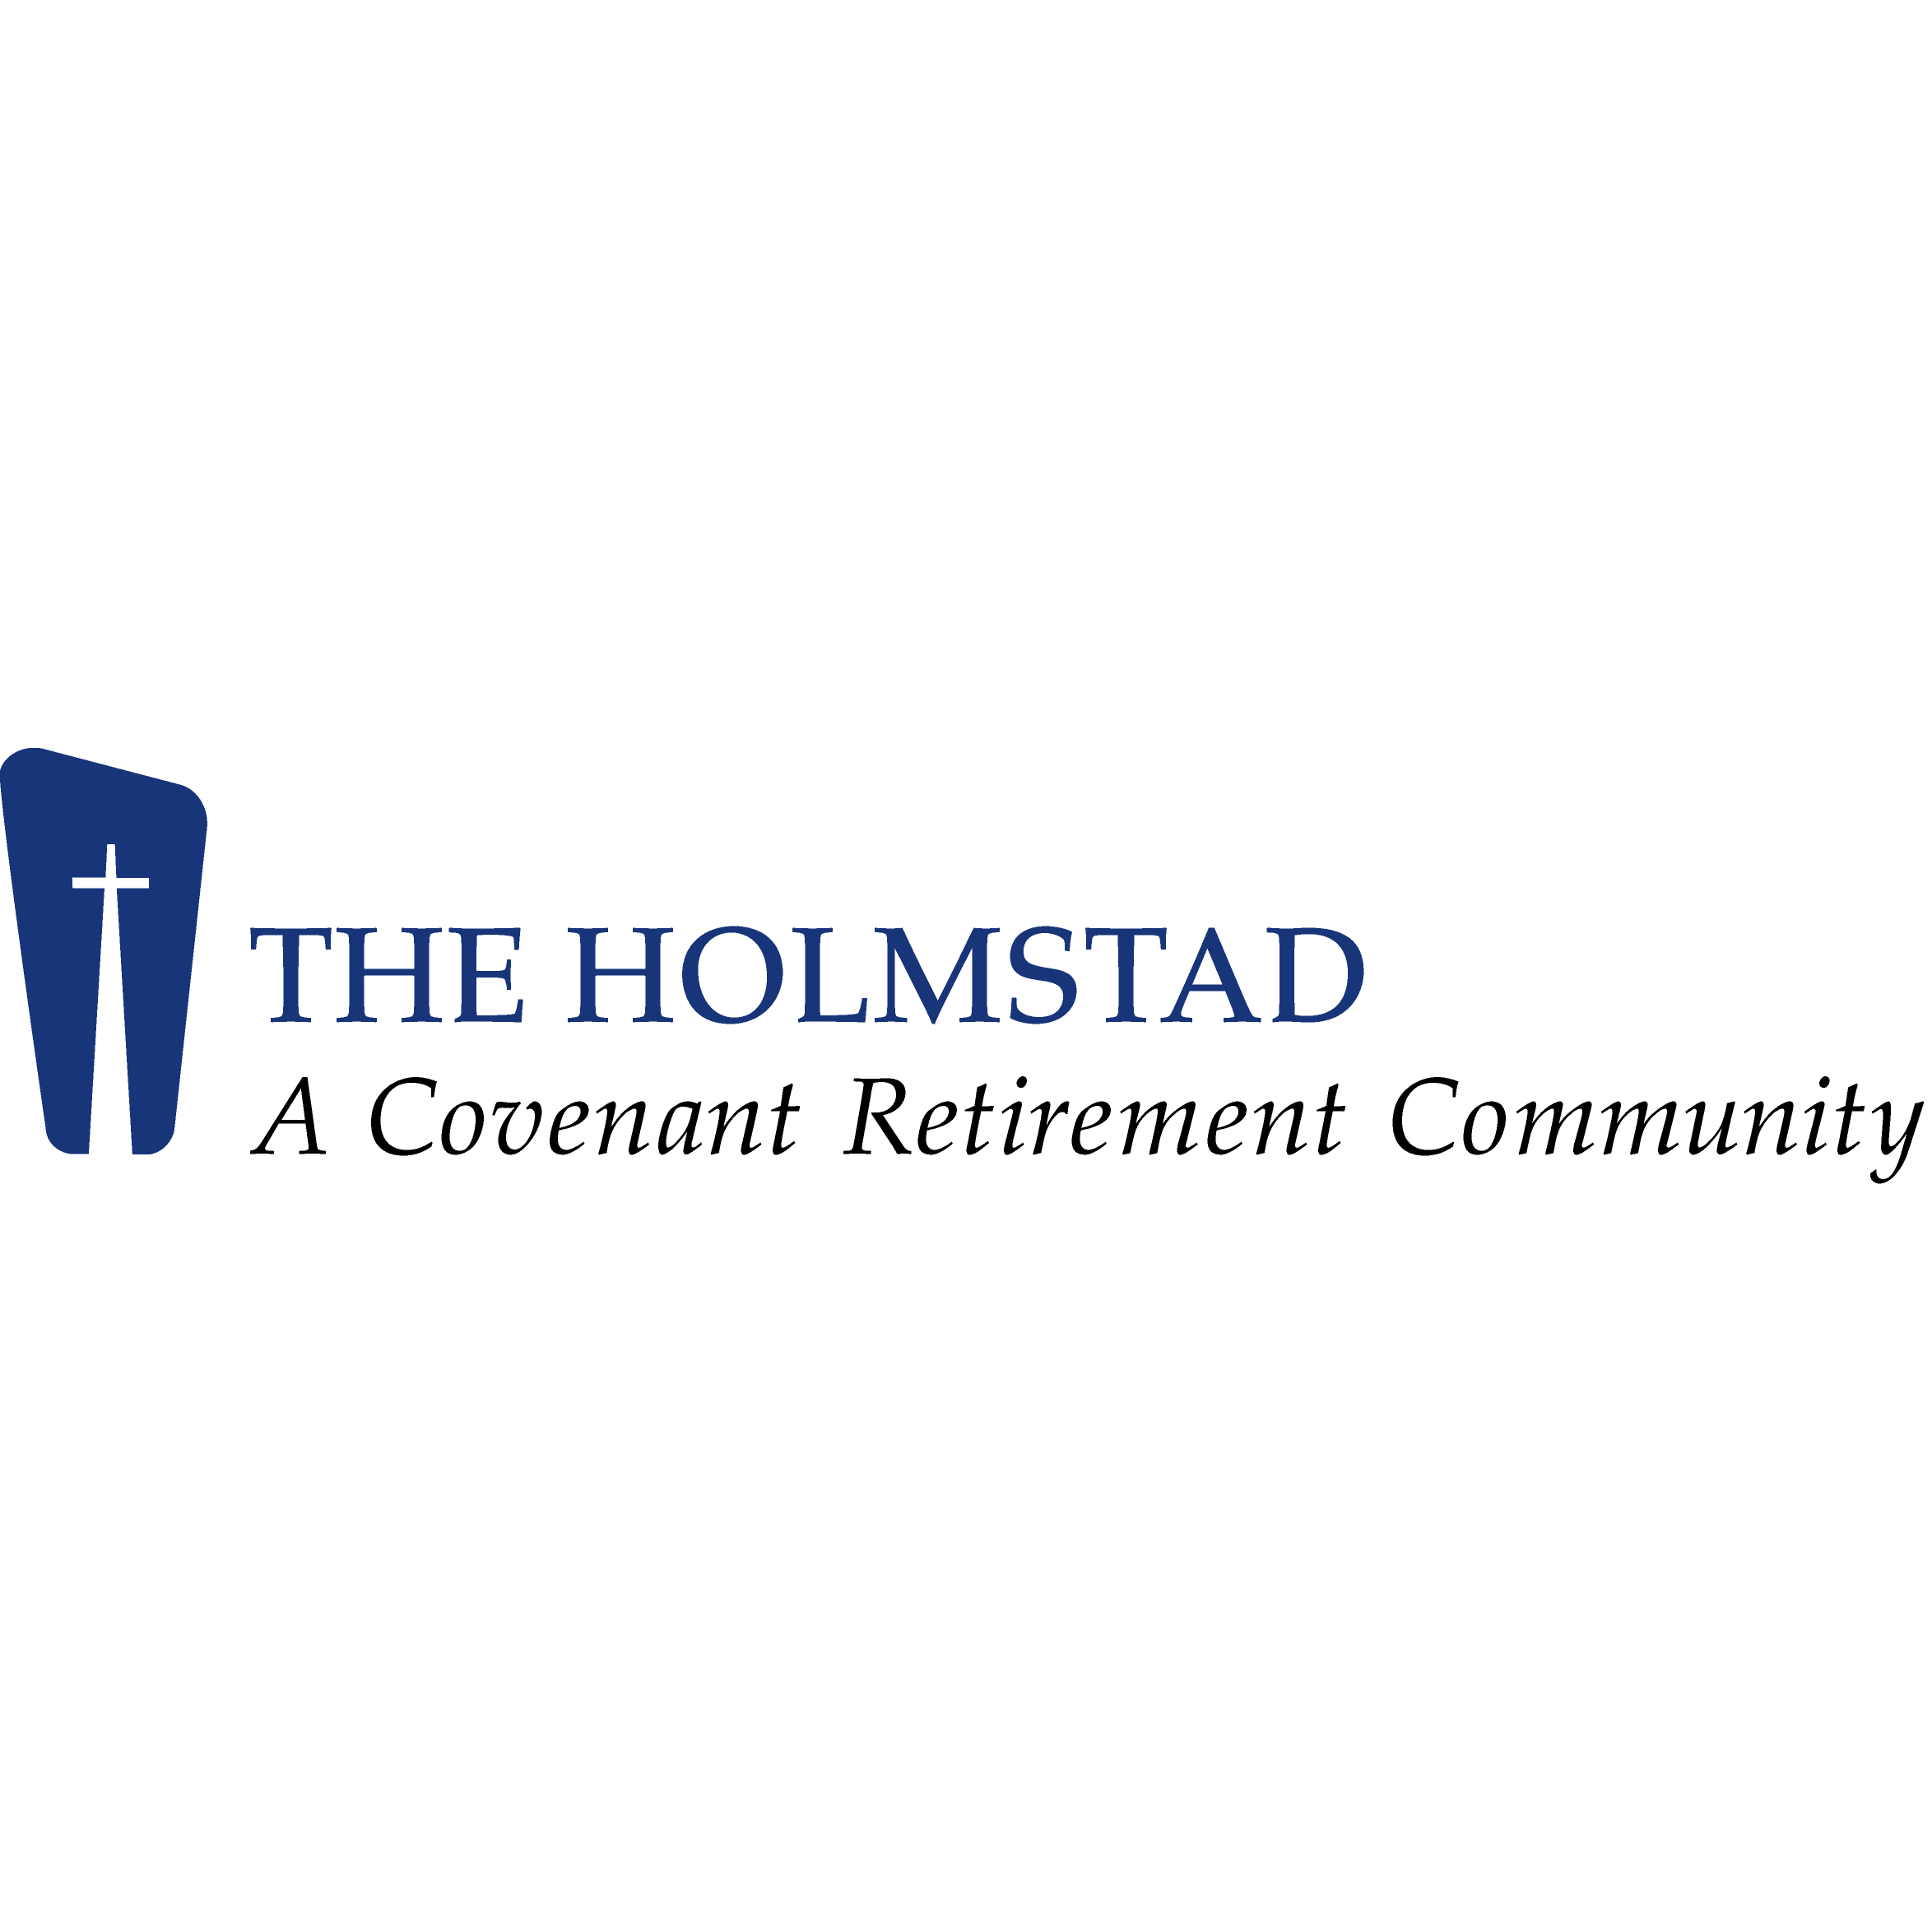 The Holmstad